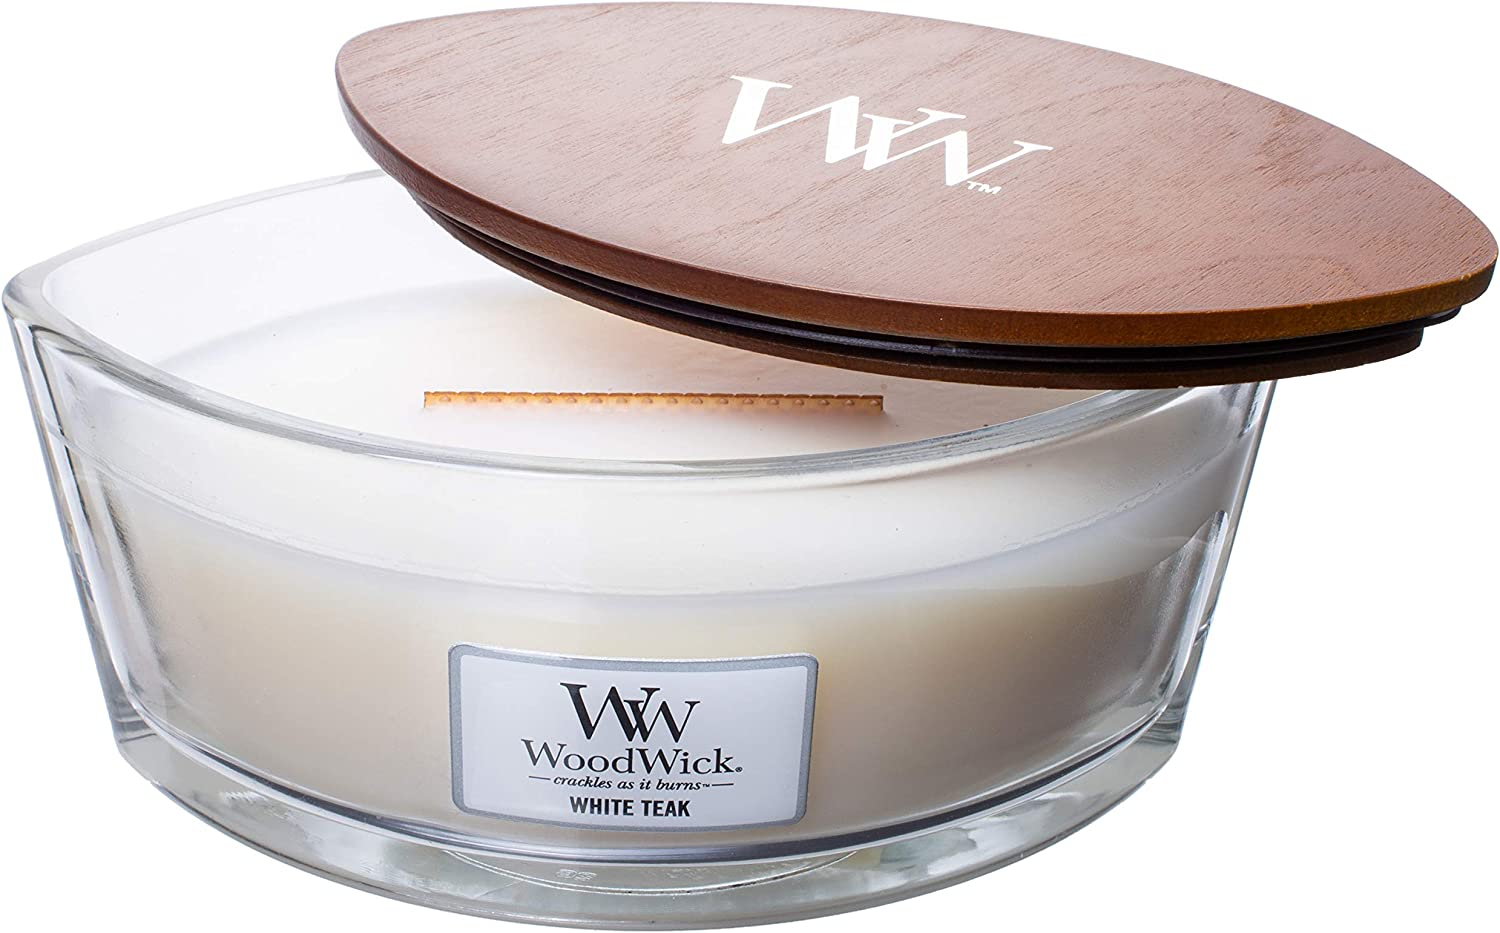 WoodWick WW White Teak, Highly Scented Candle, Ellipse Glass Jar Original HearthWick Flame, Large 7 Inches, 16 OZ